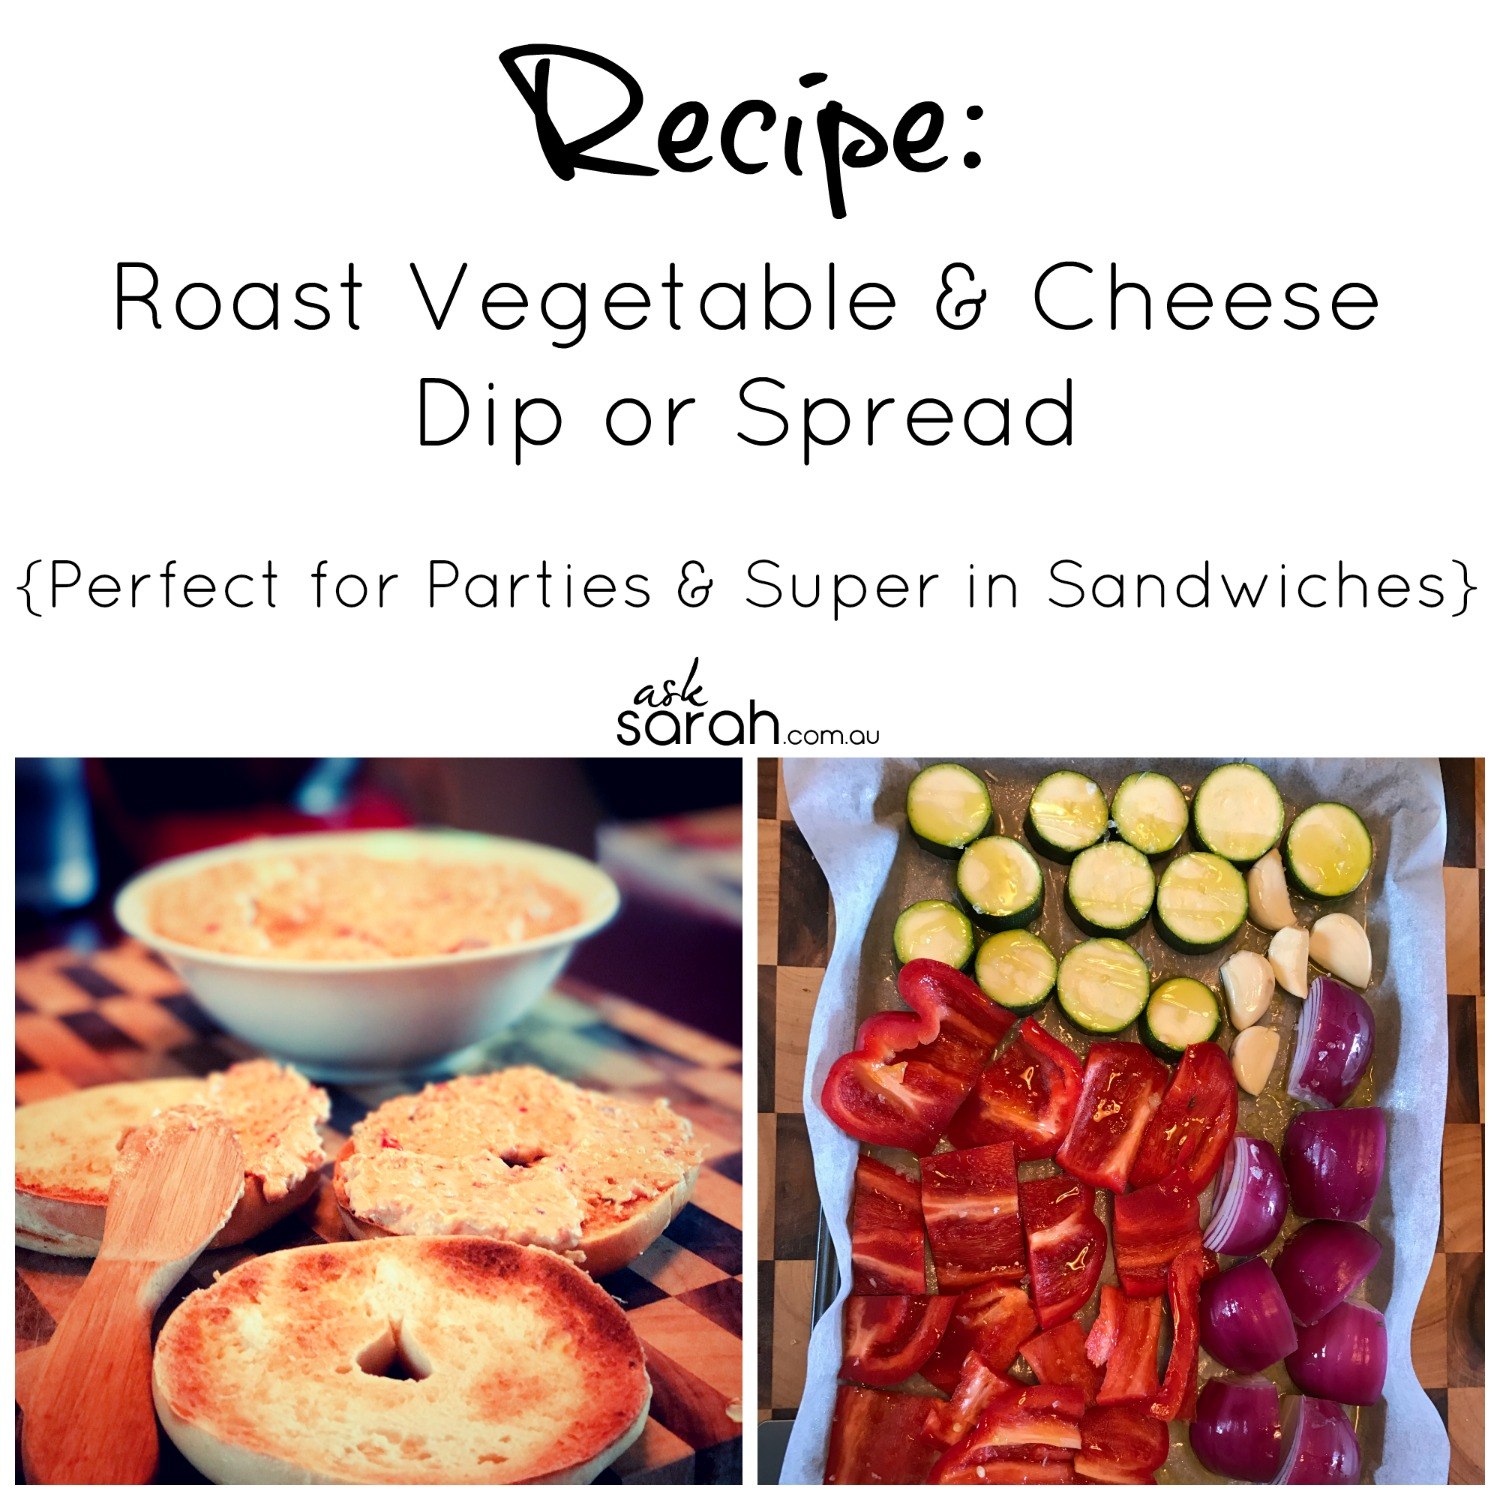 Recipe: Roast Vegetable & Cheese Dip or Spread {Perfect for Parties & Super in Sandwiches}